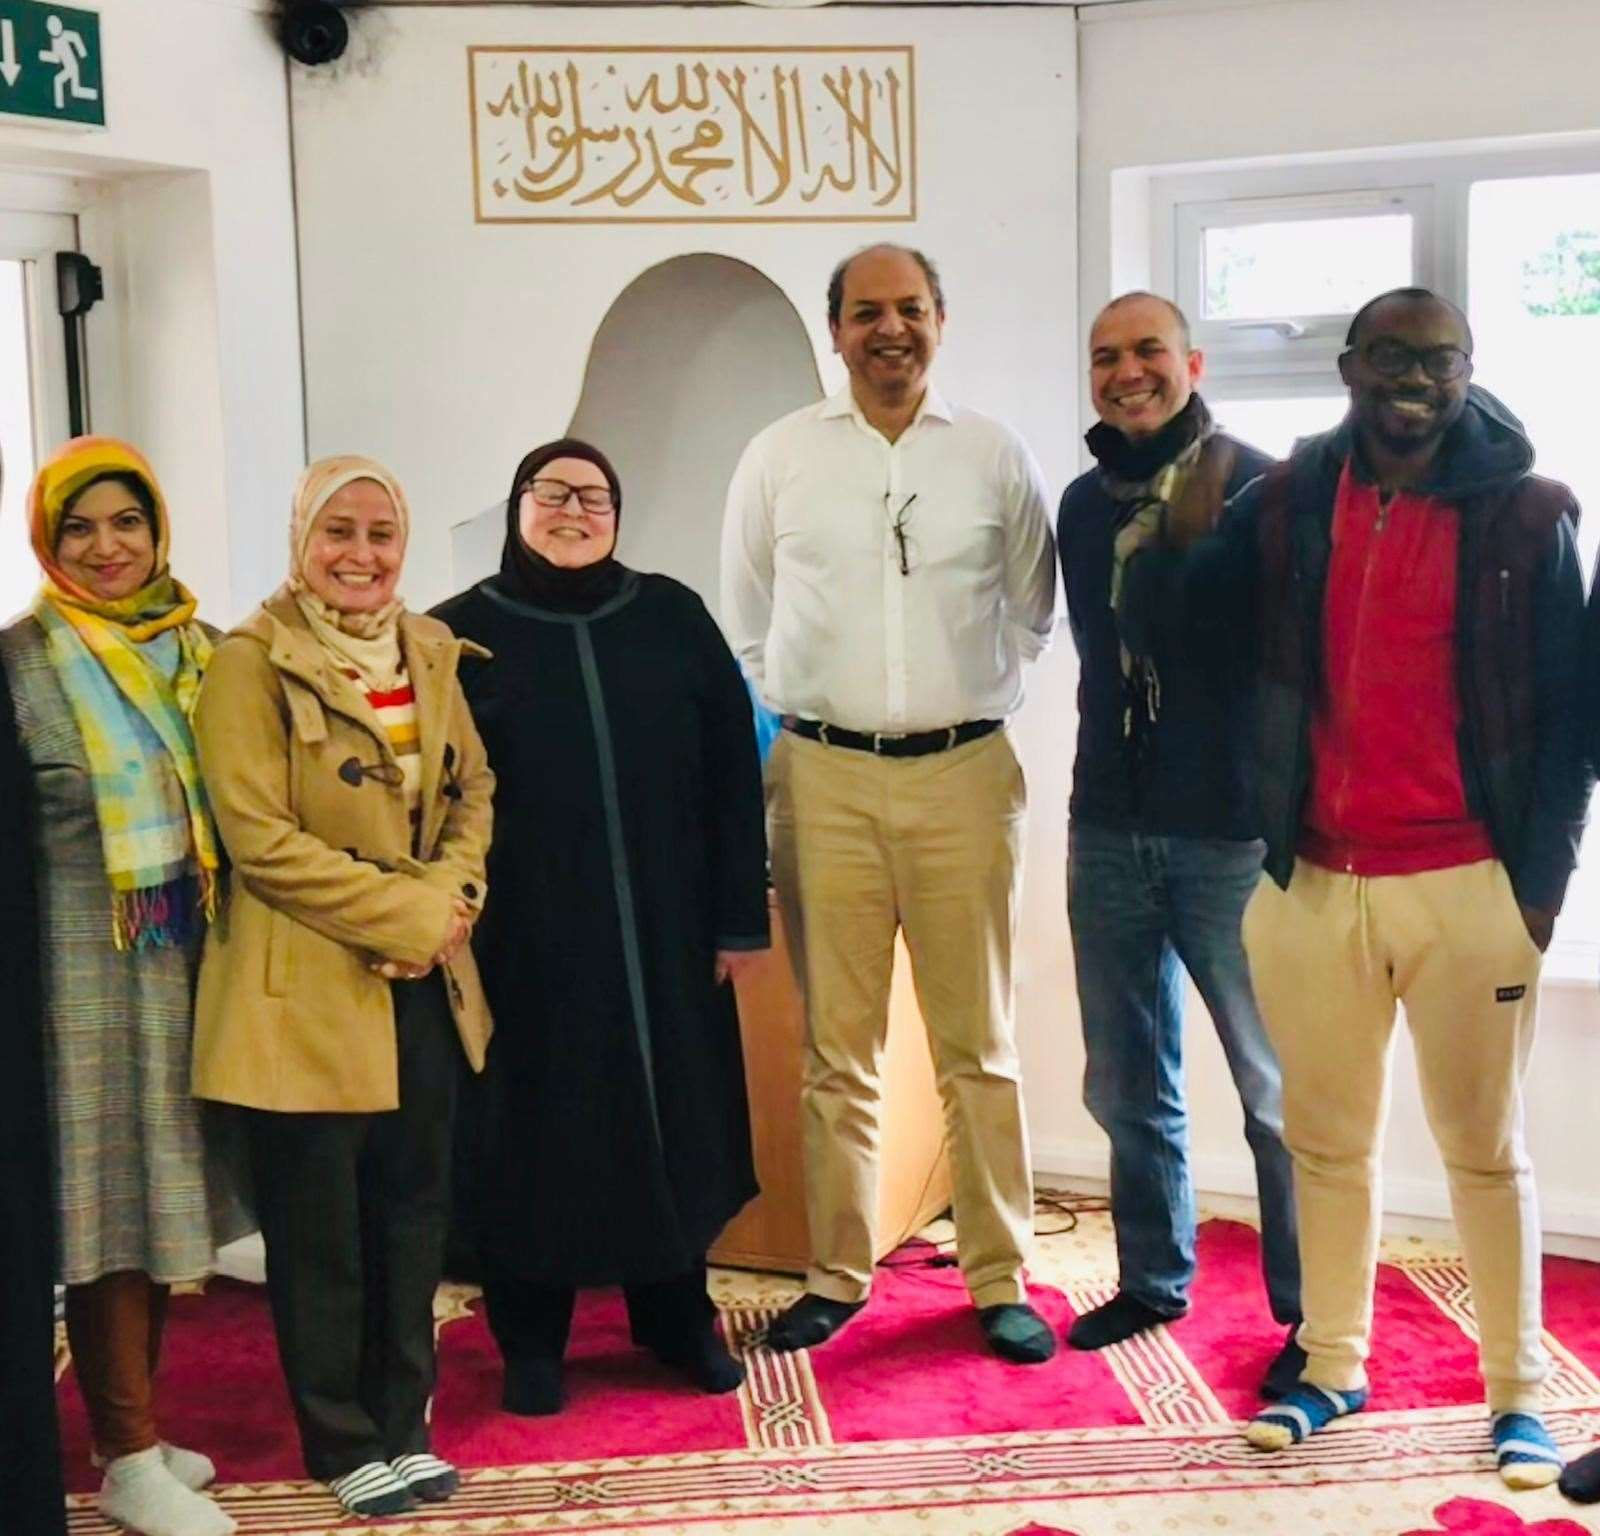 Canterbury Mosque's elected committee members (picture taken pre-pandemic)